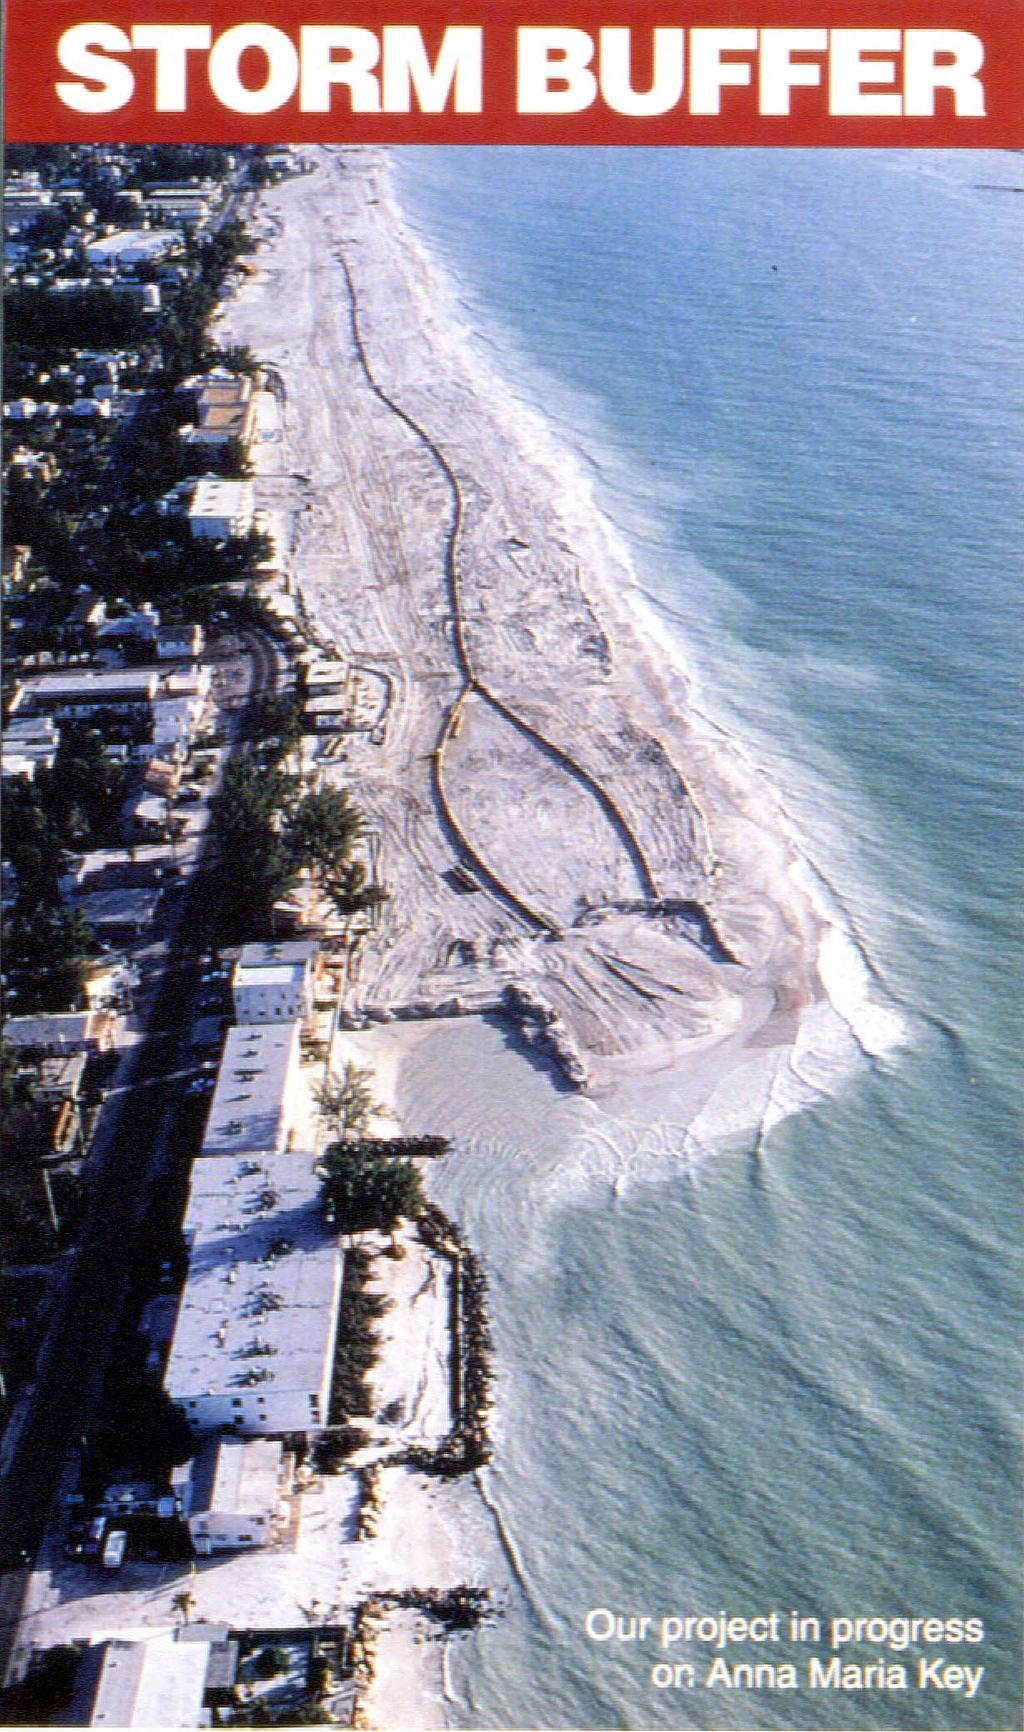 Beach restoration by sand nourishment is a world-wide wide